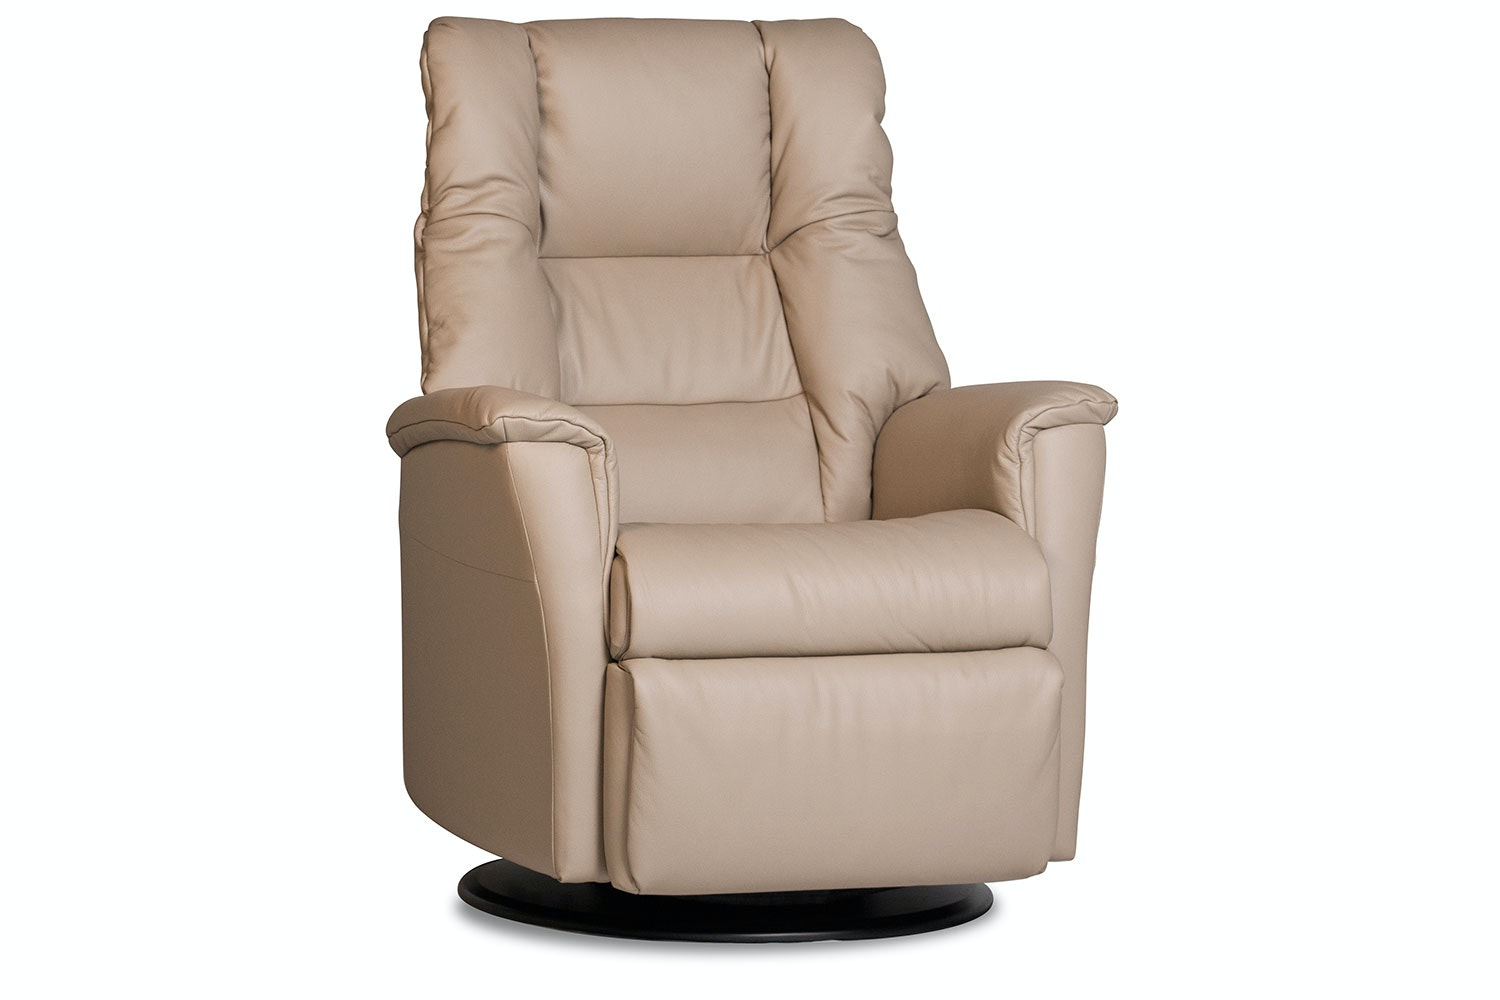 Victor Leather Recliner Chair -Prime - IMG  sc 1 st  Harvey Norman & Victor Leather Recliner Chair -Prime - IMG   Harvey Norman New Zealand